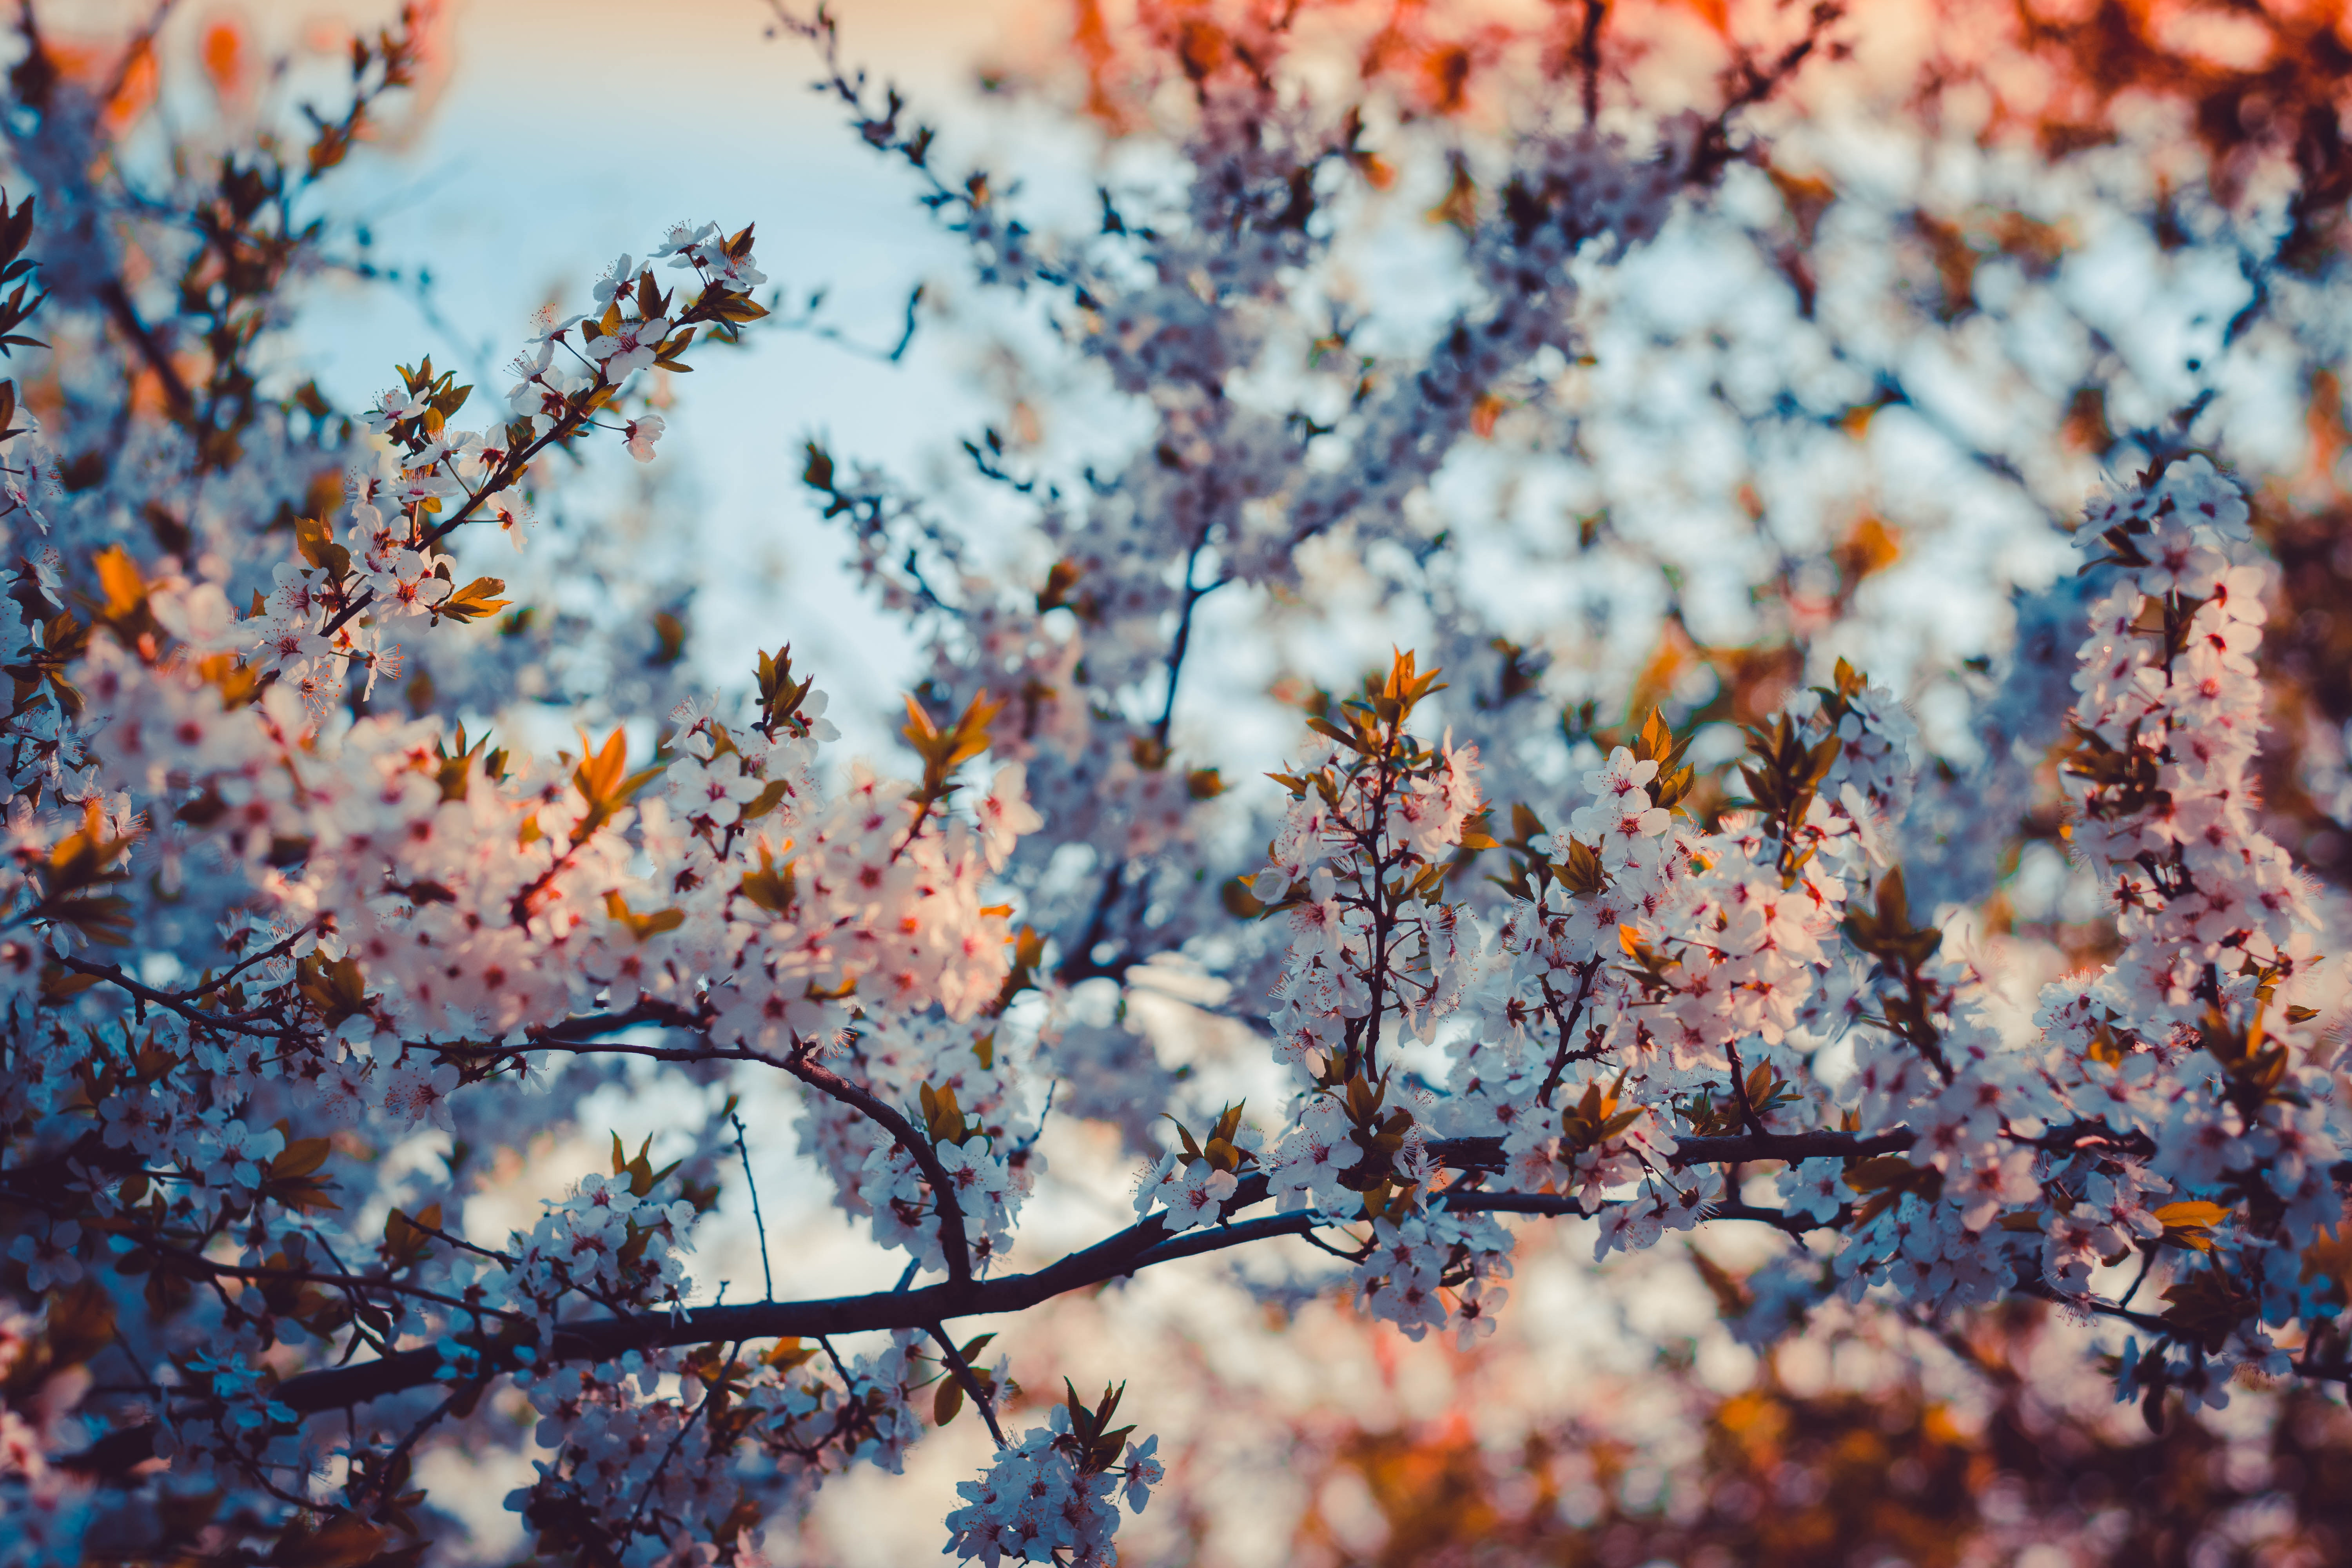 Close-up Photography of Cherry Blossom, Focus, Flowers, Flora, Hd wallpapers, HQ Photo